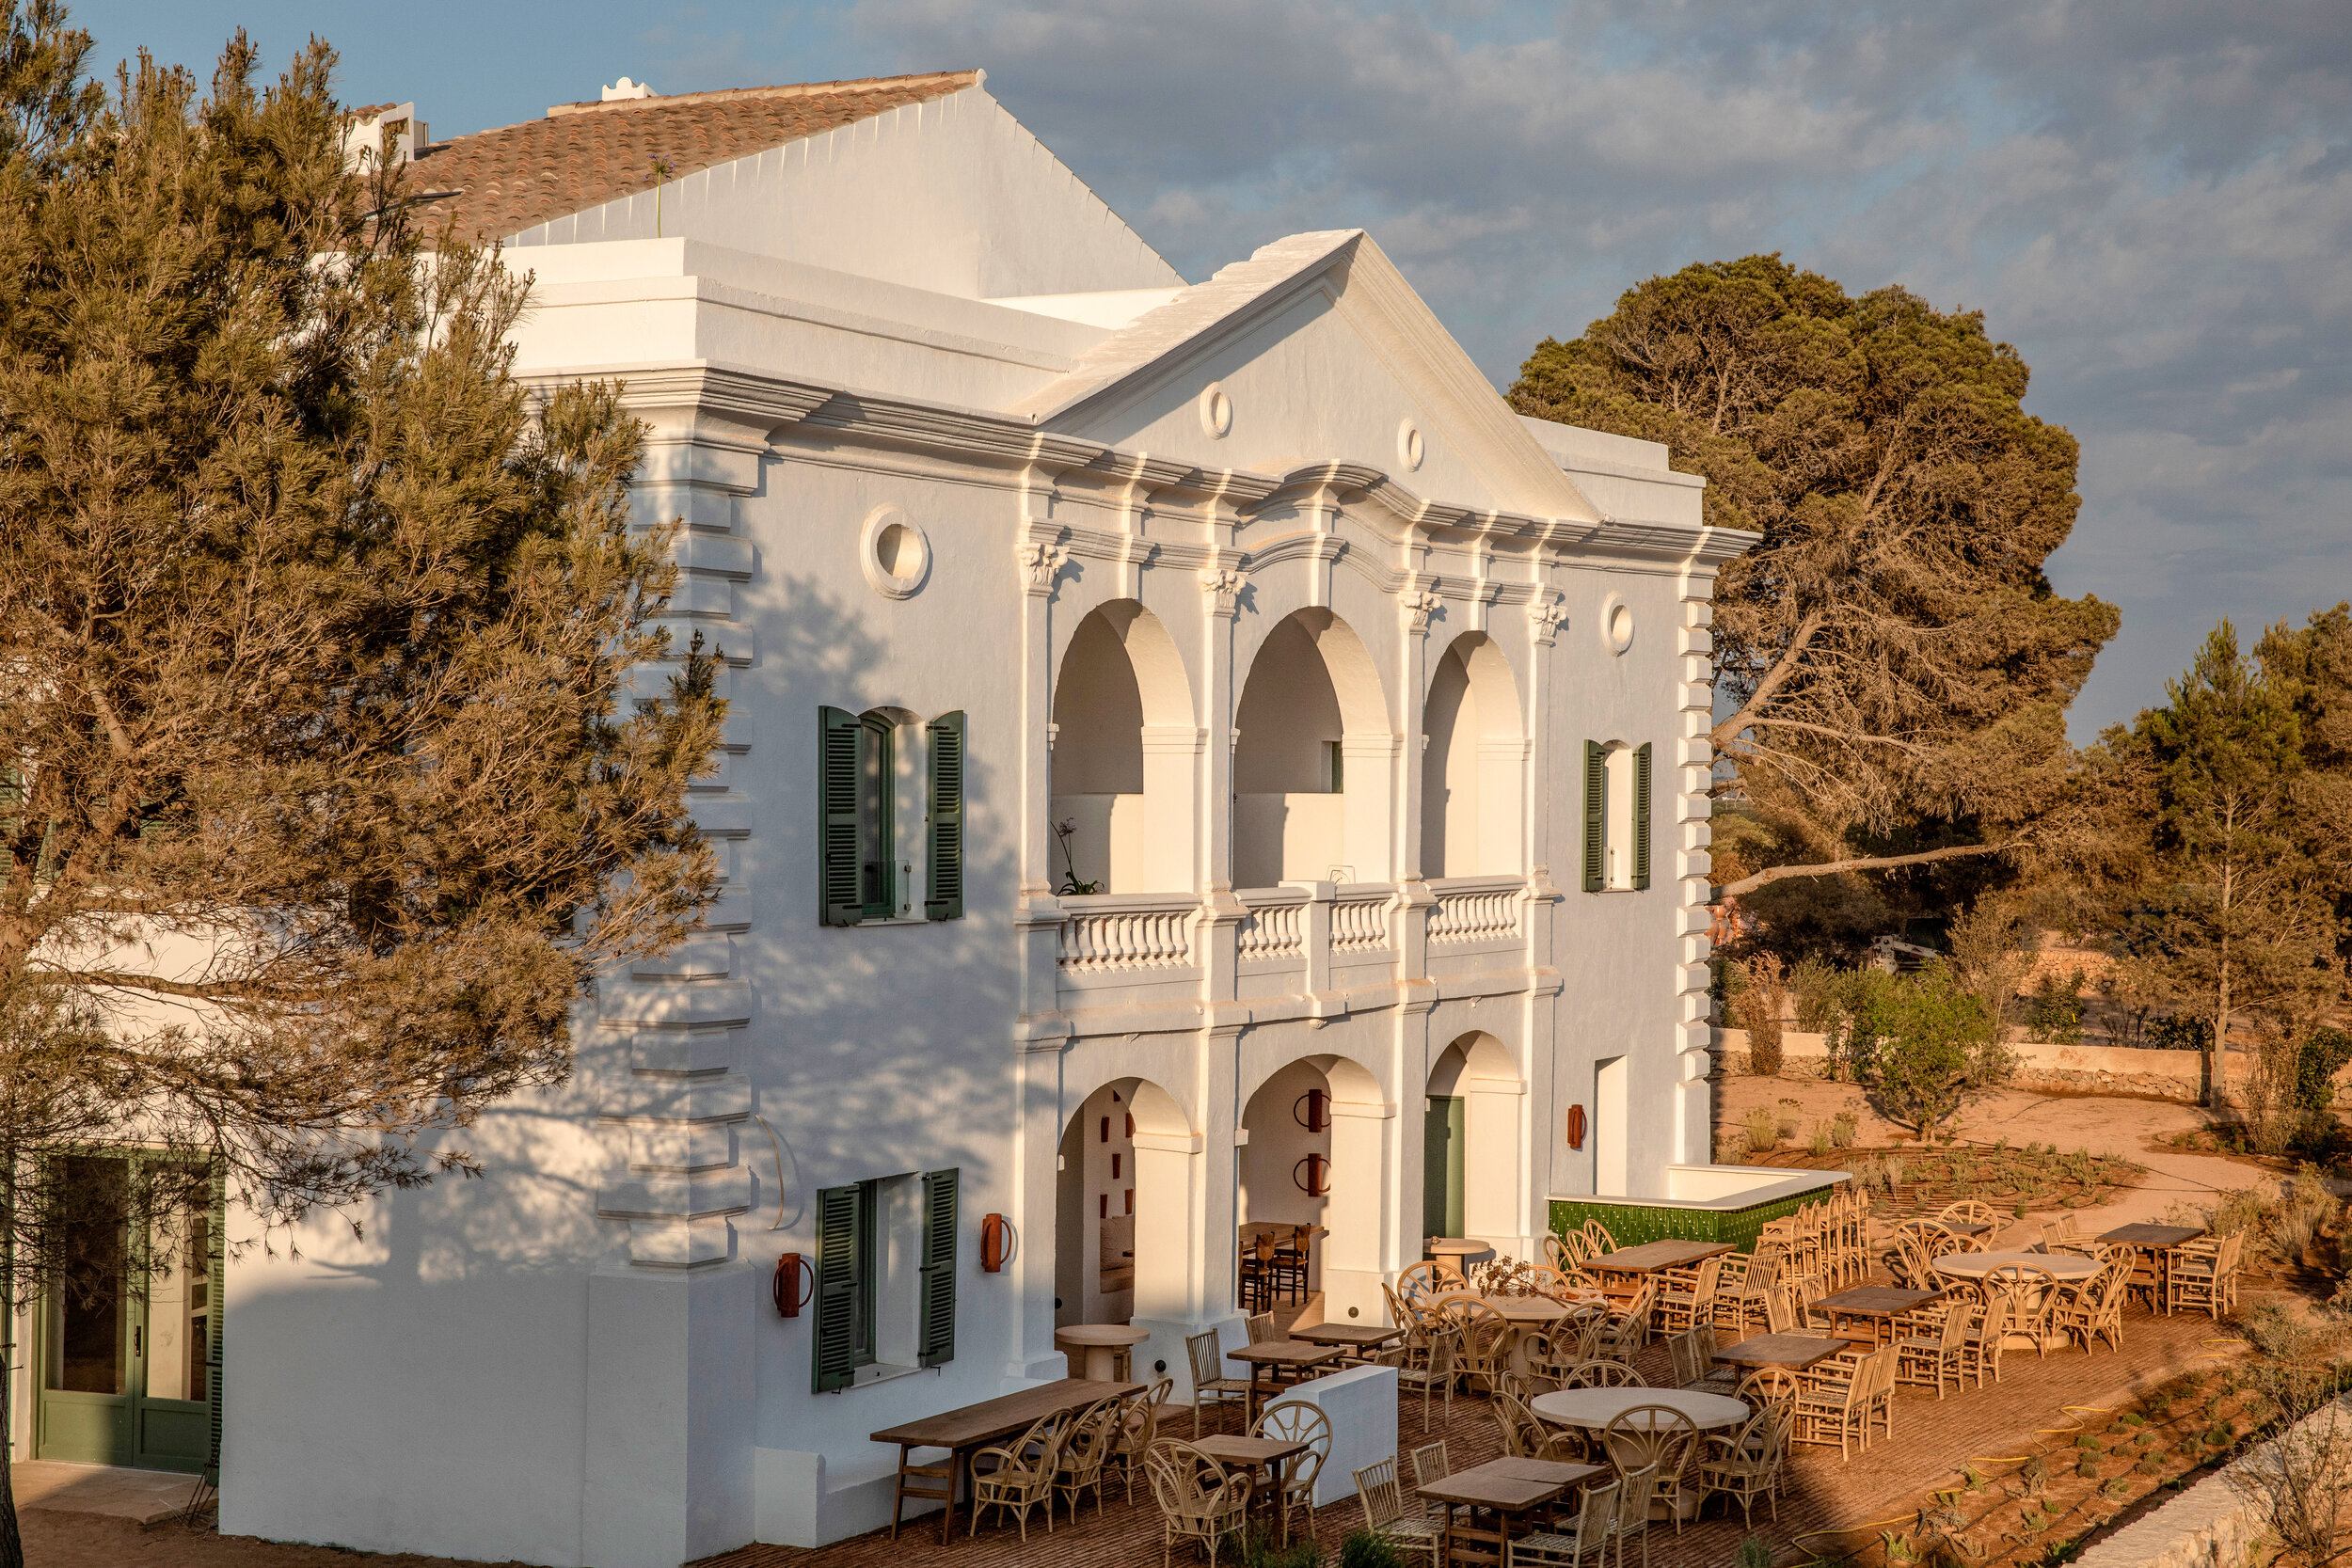 Experimental Hotel's latest opening was born out of the bones of a 19th-century Finca on the island of Menorca in the Mediterranean.